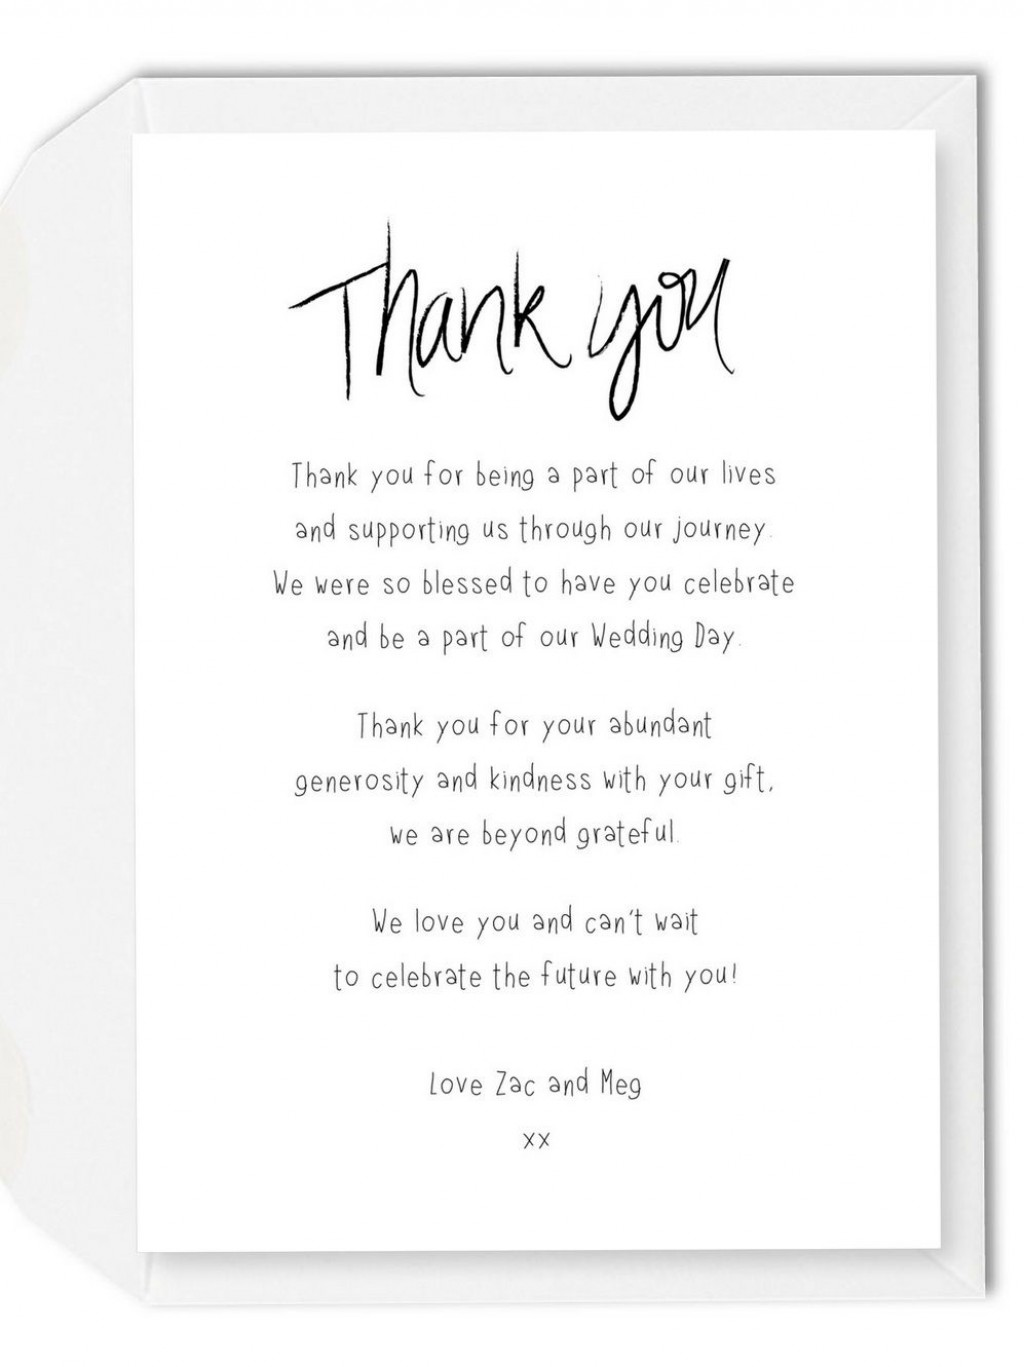 002 Imposing Wedding Thank You Note Template Picture  Money Sample Wording Bridal Shower GiftLarge